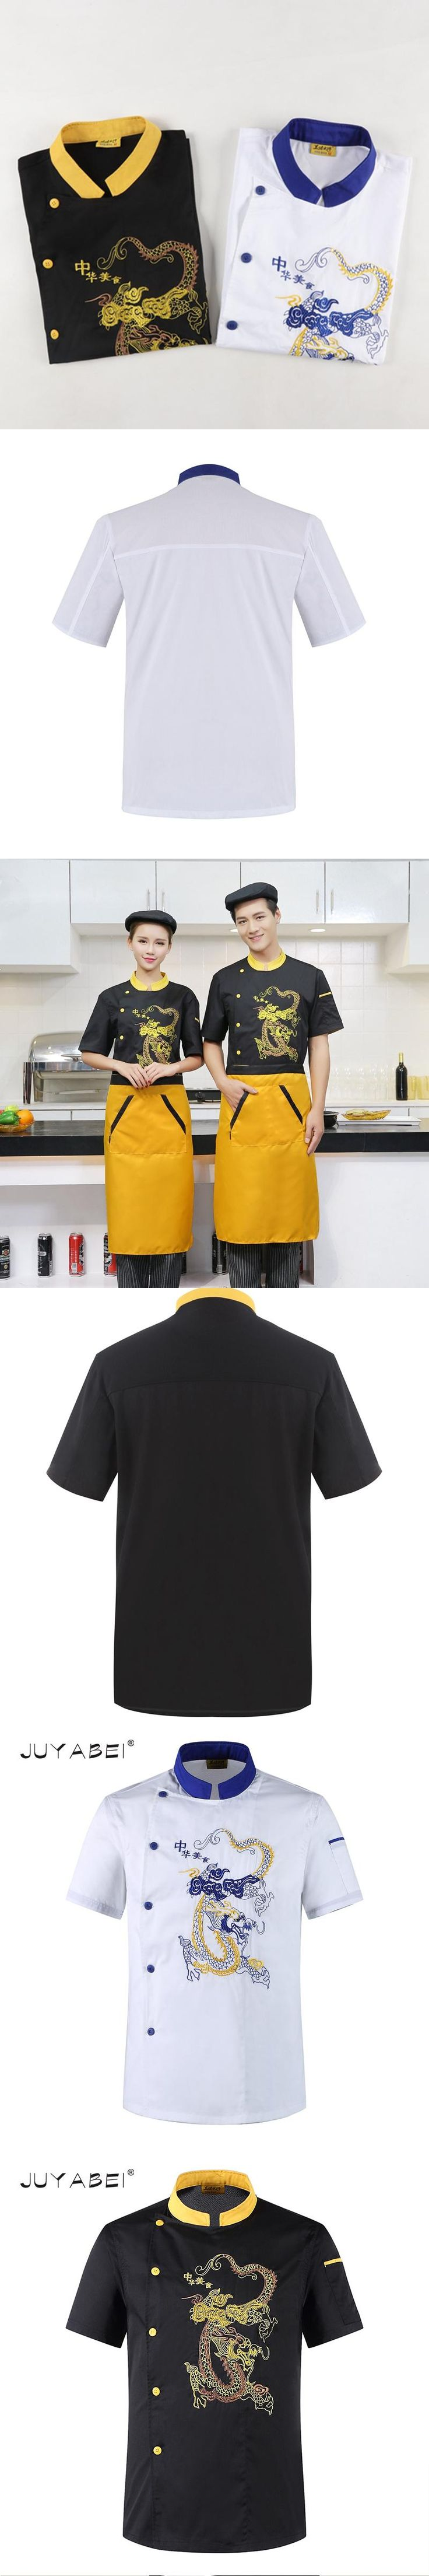 """Summer Hotel Restaurant Chef Work Clothes Embroidery Totem Chinese Characters """"Chinese Food"""" Men's Black and White Chef Uniforms"""